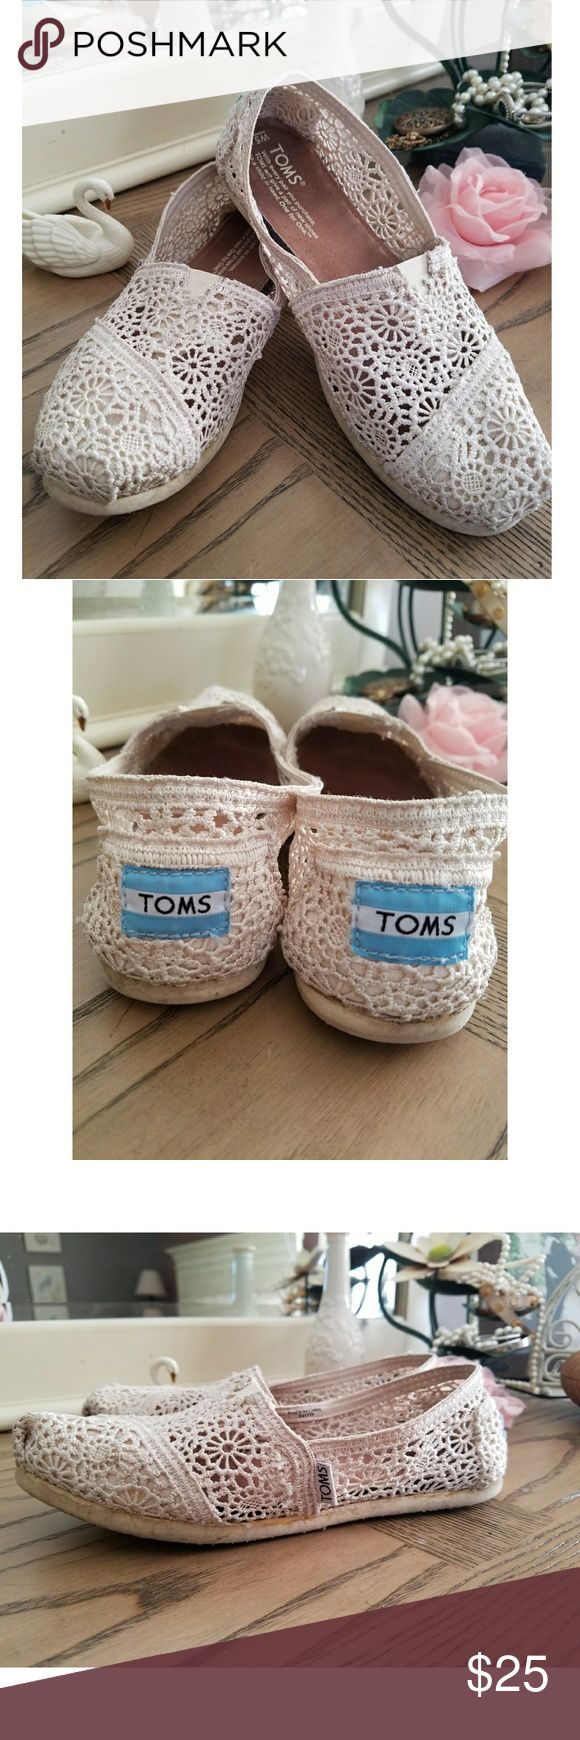 Cream lace toms 🦋🌹🌻 Pre-loved cream lace toms. Some wear, as pictured, but still a ton of life left & look great on! Size 5.5. Toms Shoes Flats & Loafers